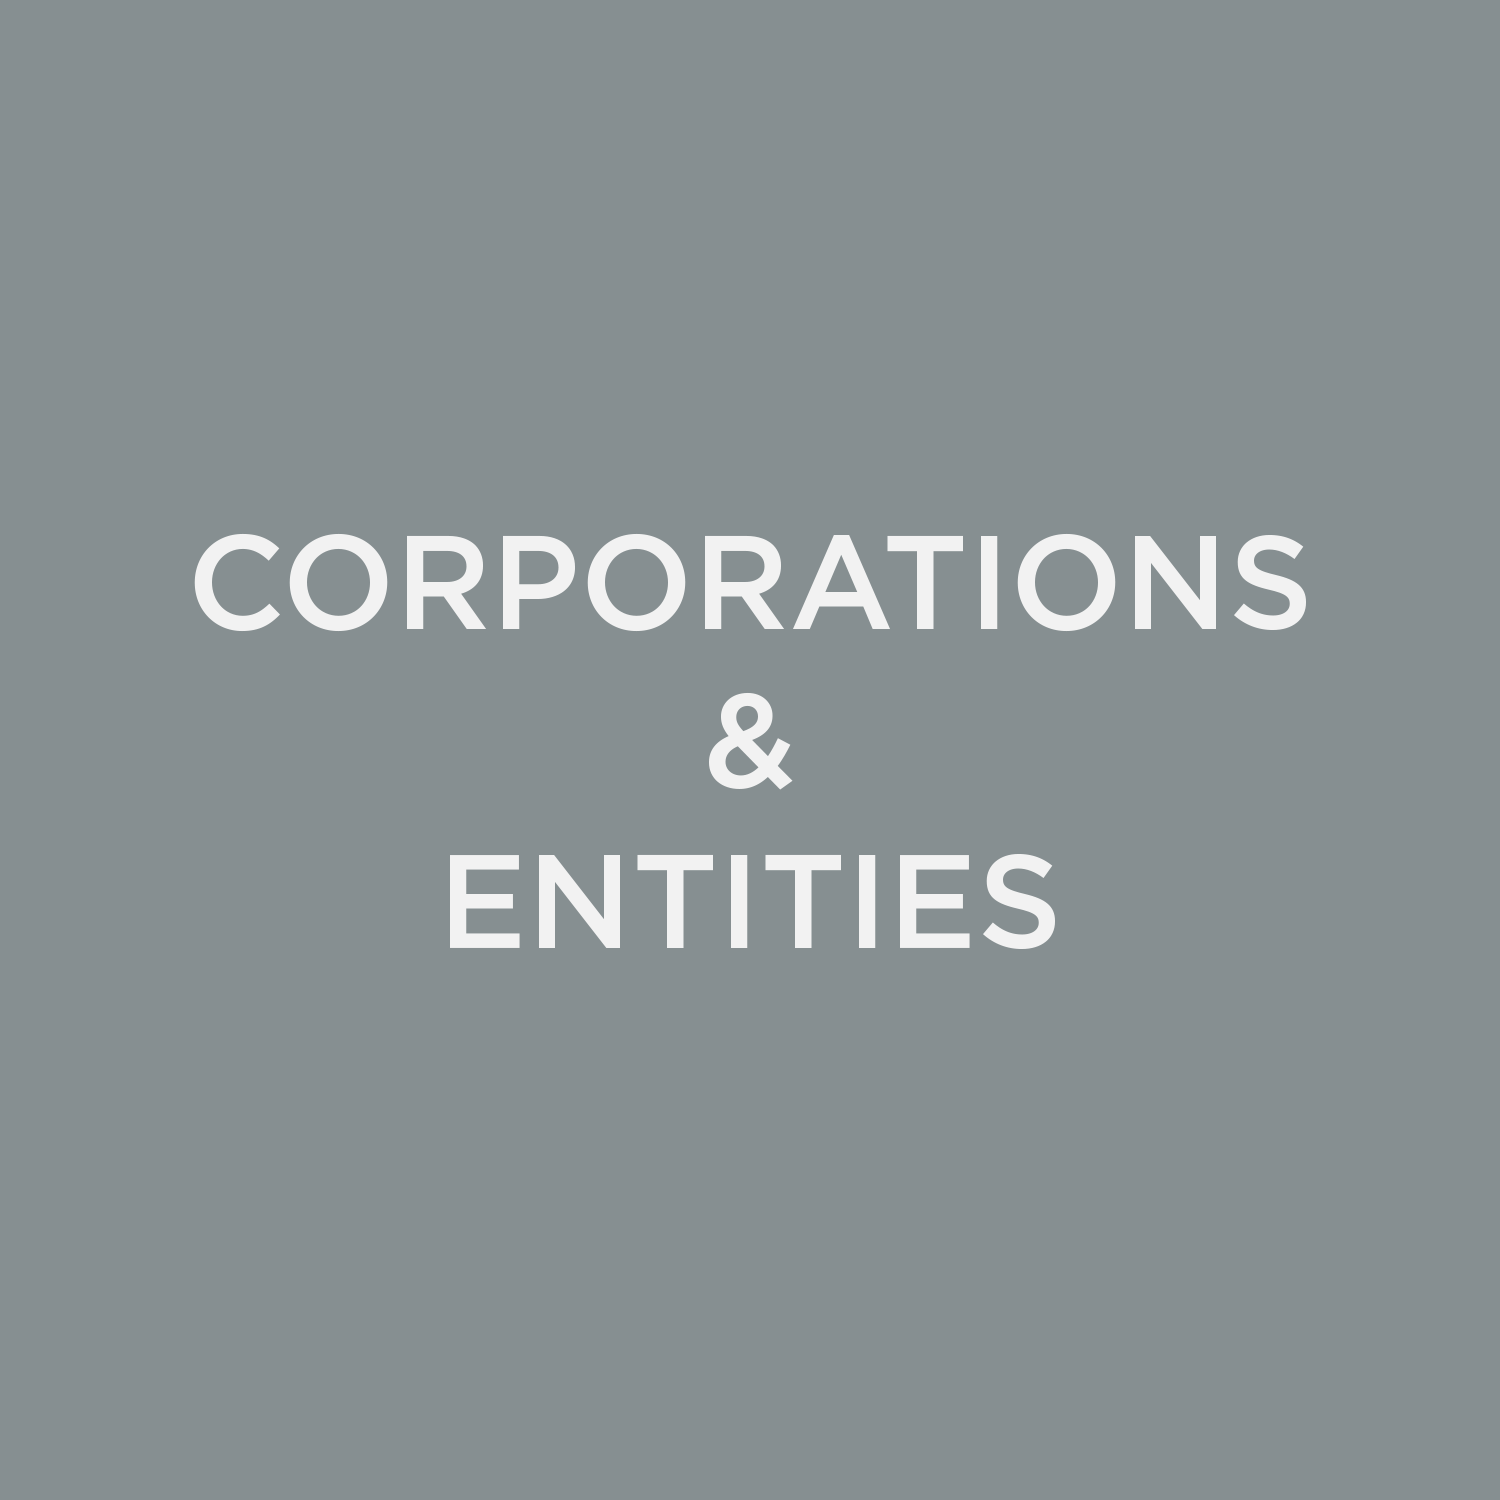 Corporations & Entities